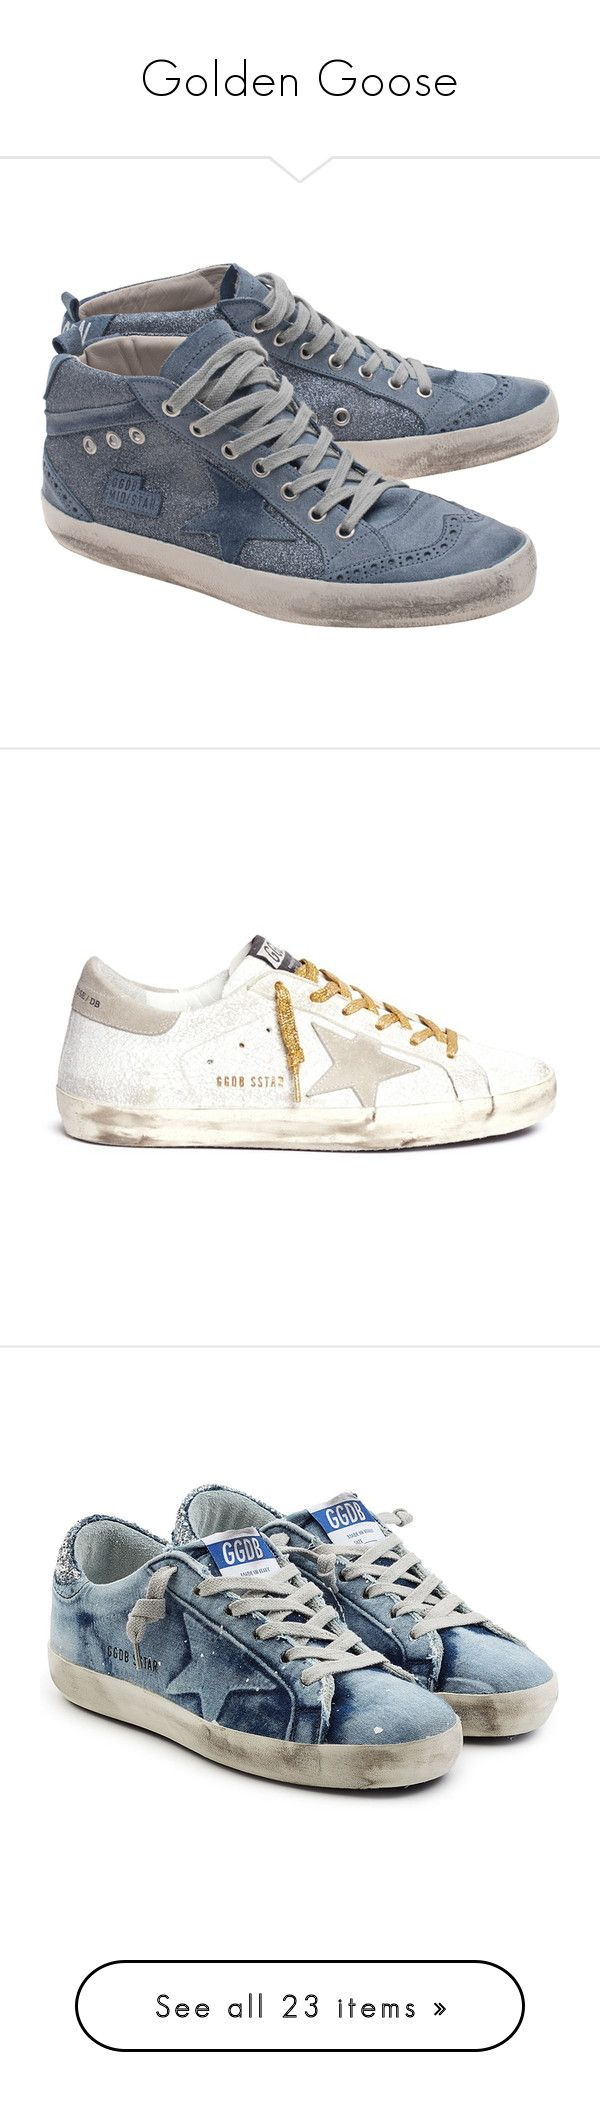 """""""Golden Goose"""" by tina-teena ❤ liked on Polyvore featuring shoes, sneakers, distressed sneakers, blue leather sneakers, leather sneakers, blue sneakers, golden goose sneakers, glitter sneakers, leopard wedge sneakers and lace up sneakers"""